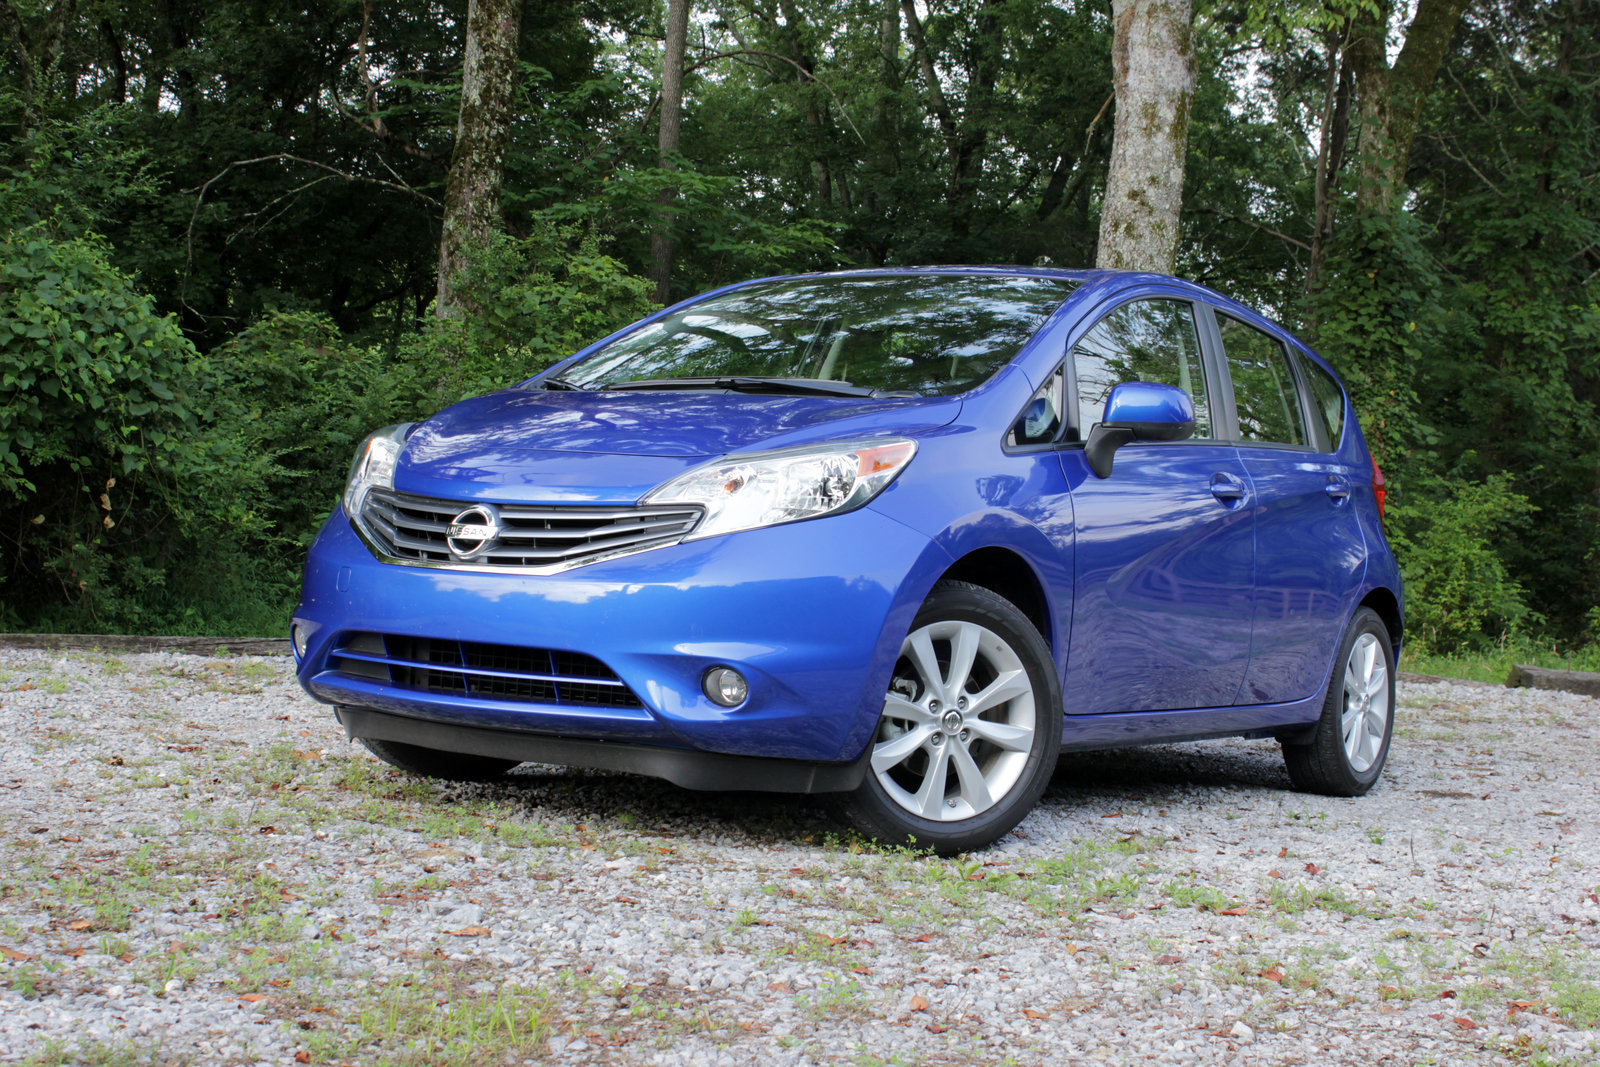 2014 nissan versa note review driven picture 561803 car review top speed. Black Bedroom Furniture Sets. Home Design Ideas